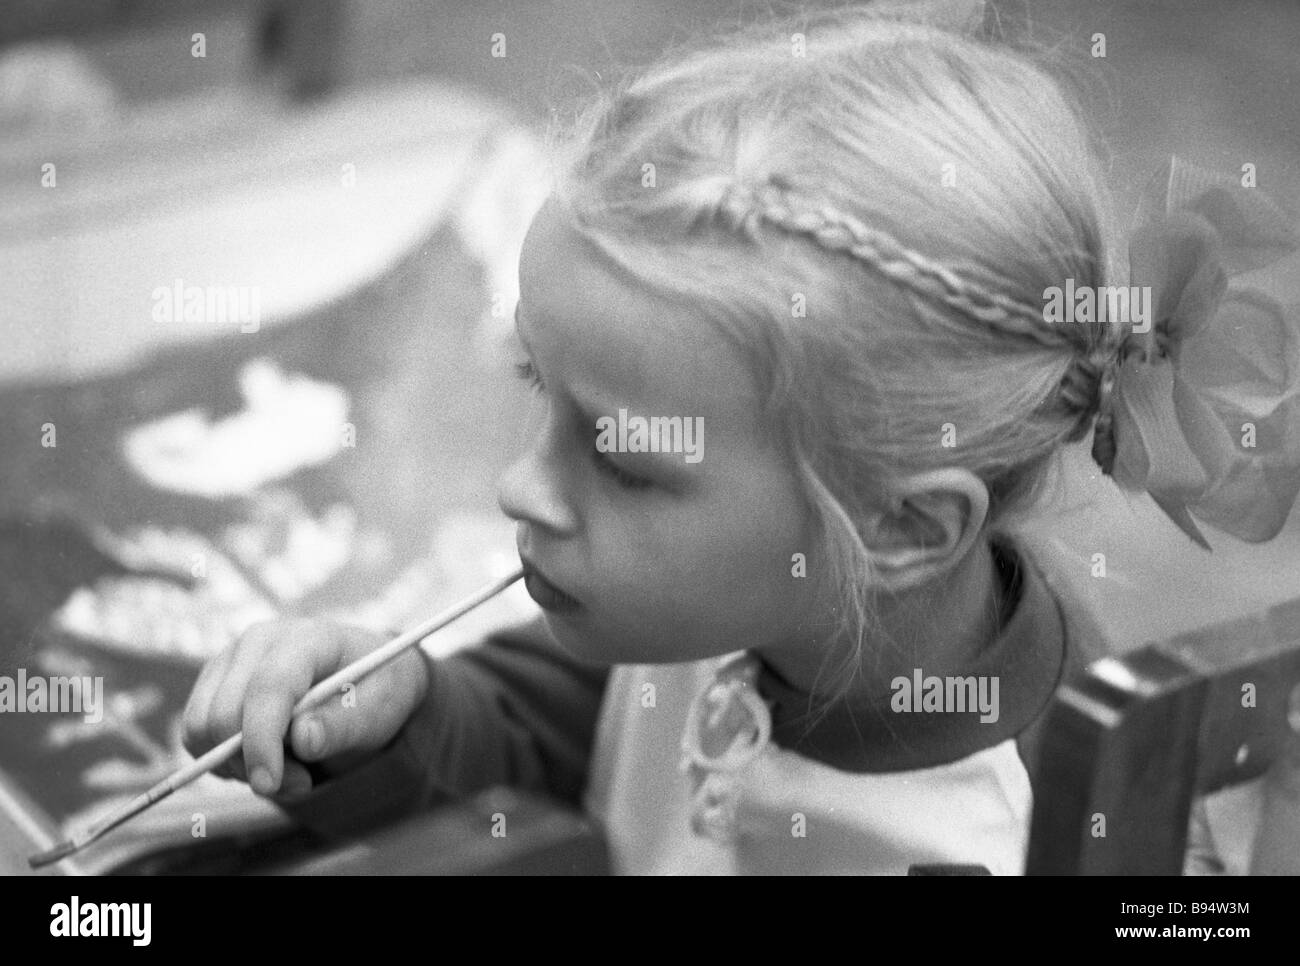 A drawing lesson at school - Stock Image